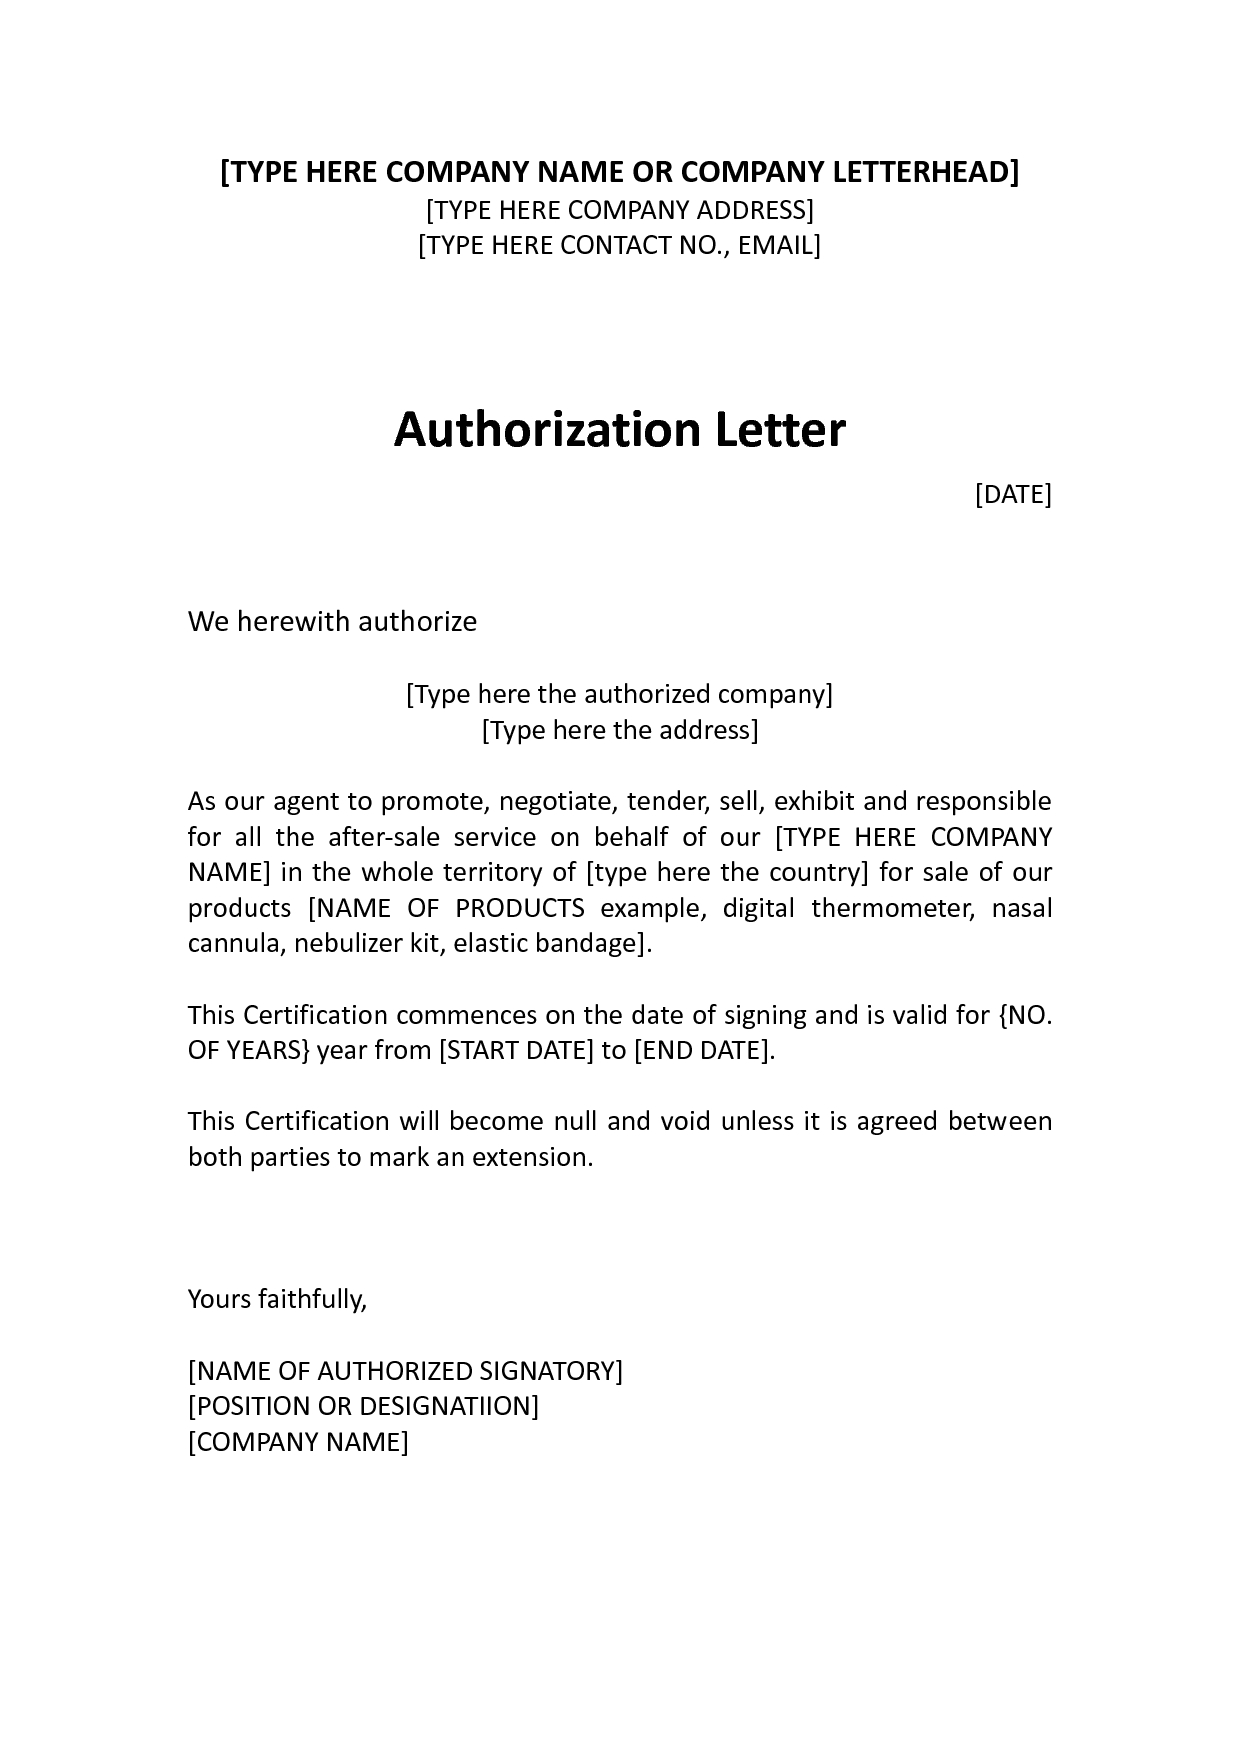 Demand Letter to Landlord Template - Authorization Distributor Letter Sample Distributor Dealer